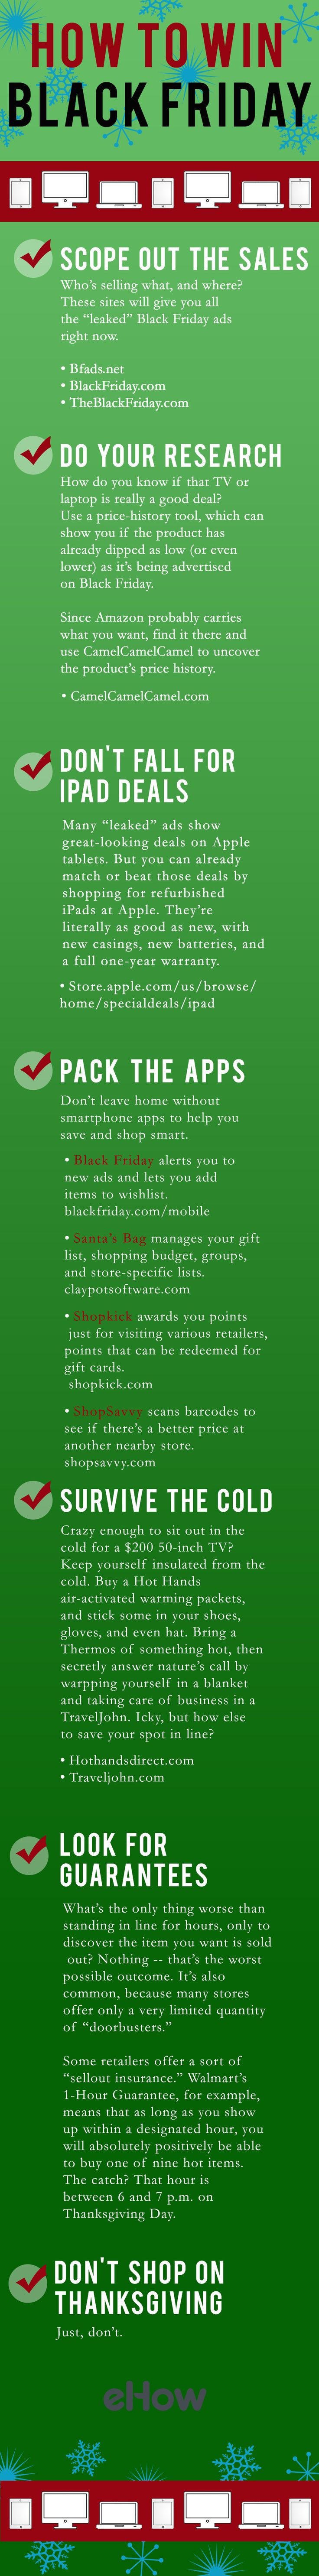 How To Win Black Friday [infographic